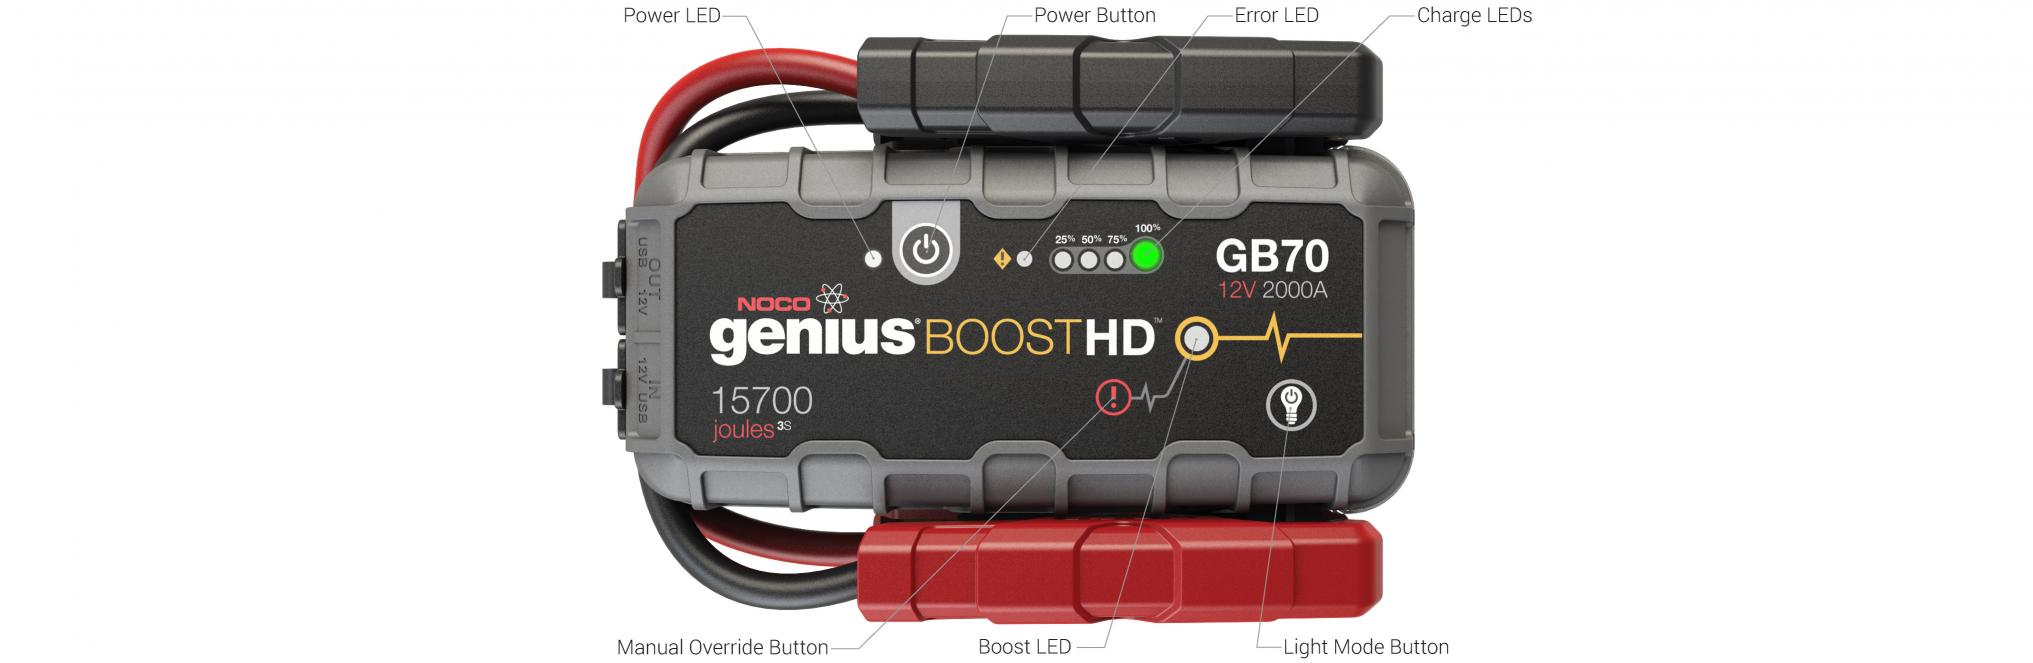 Noco Genius Battery Booster Gb70 12v 2000a Manual Guide